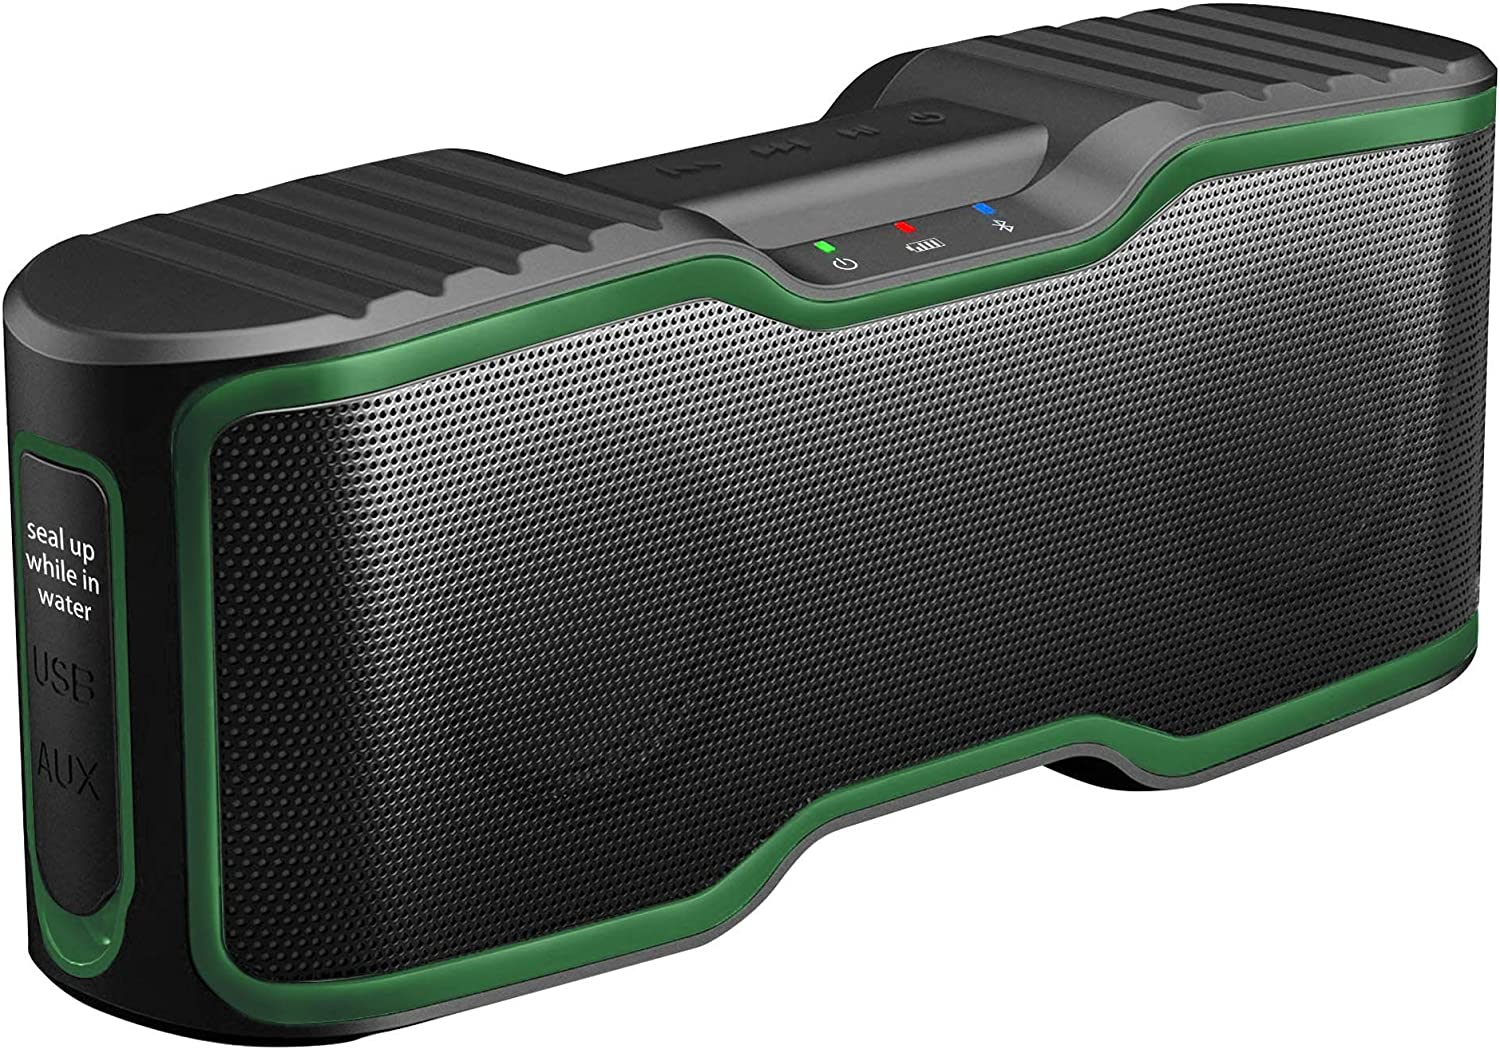 AOMAIS Sport II Portable Wireless Bluetooth Speakers Waterproof IPX7, 15H Playtime, V5.0, 20W Bass Sound, Stereo Pairing, for Outdoors, Travel, Pool, Home Party 2020 Upgrade Deep Green